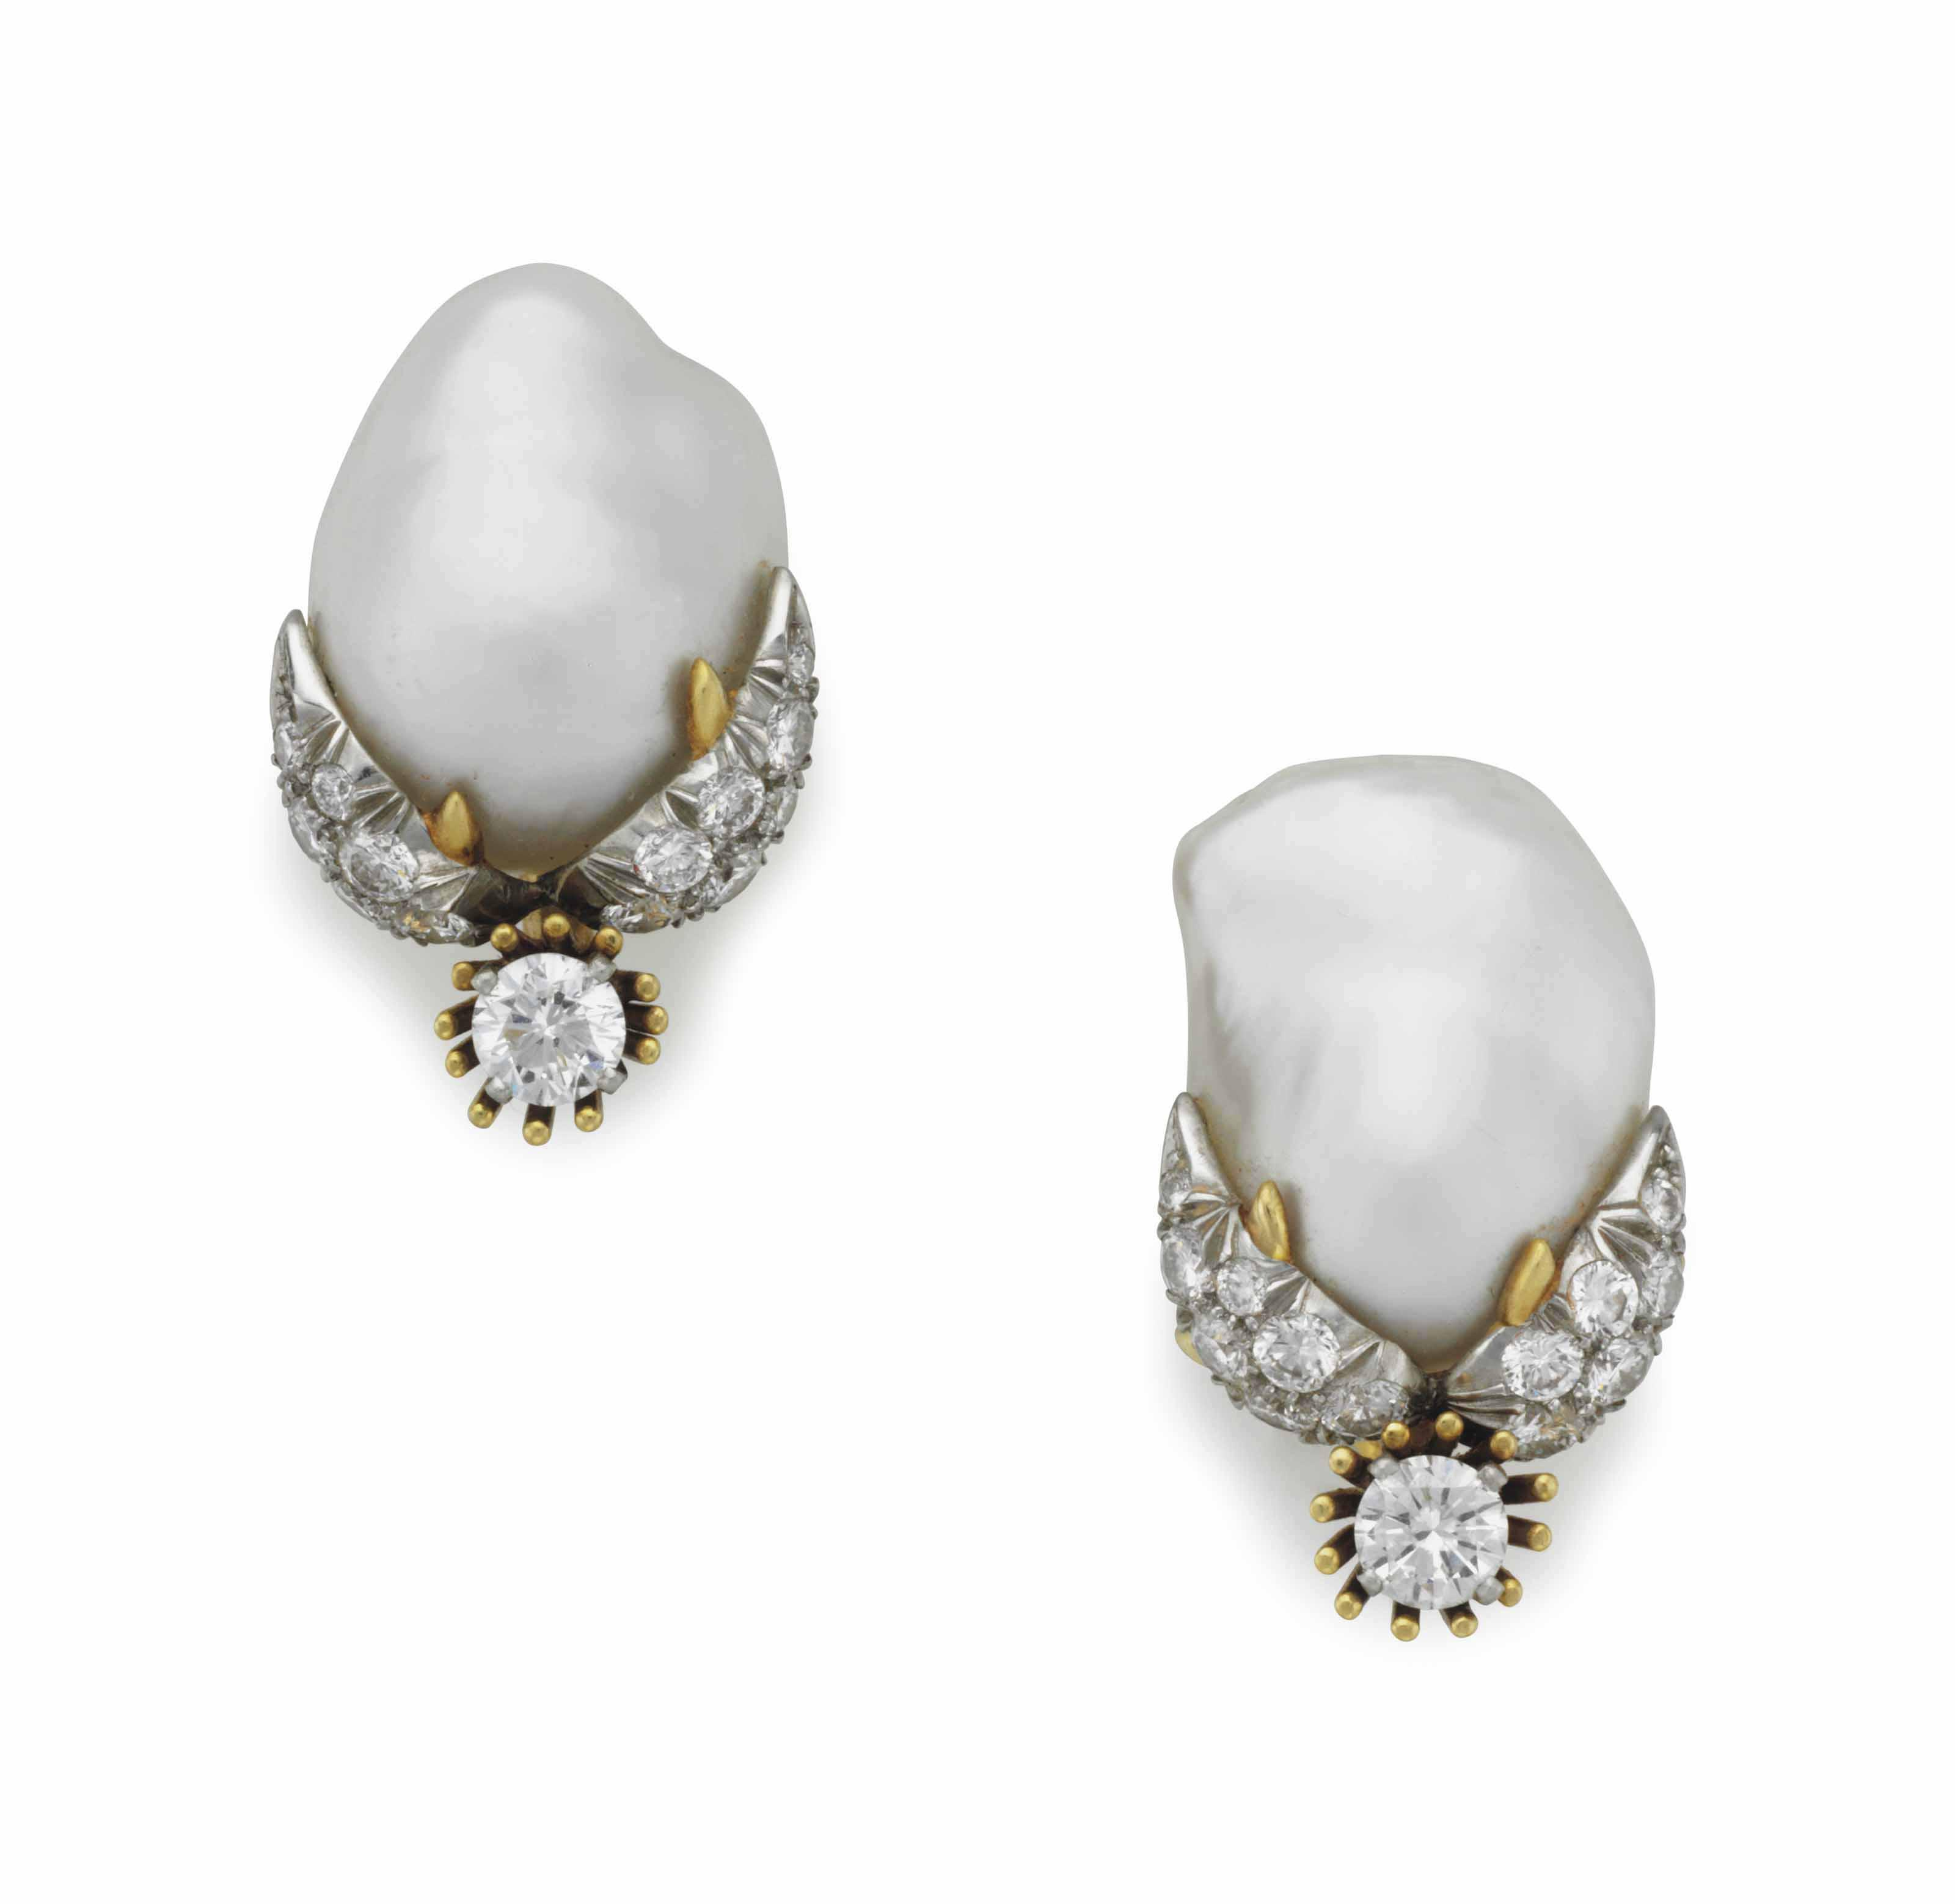 ec17872ba A PAIR OF BAROQUE CULTURED PEARL, DIAMOND AND GOLD EARRINGS, BY JEAN  SCHLUMBERGER, TIFFANY & CO.